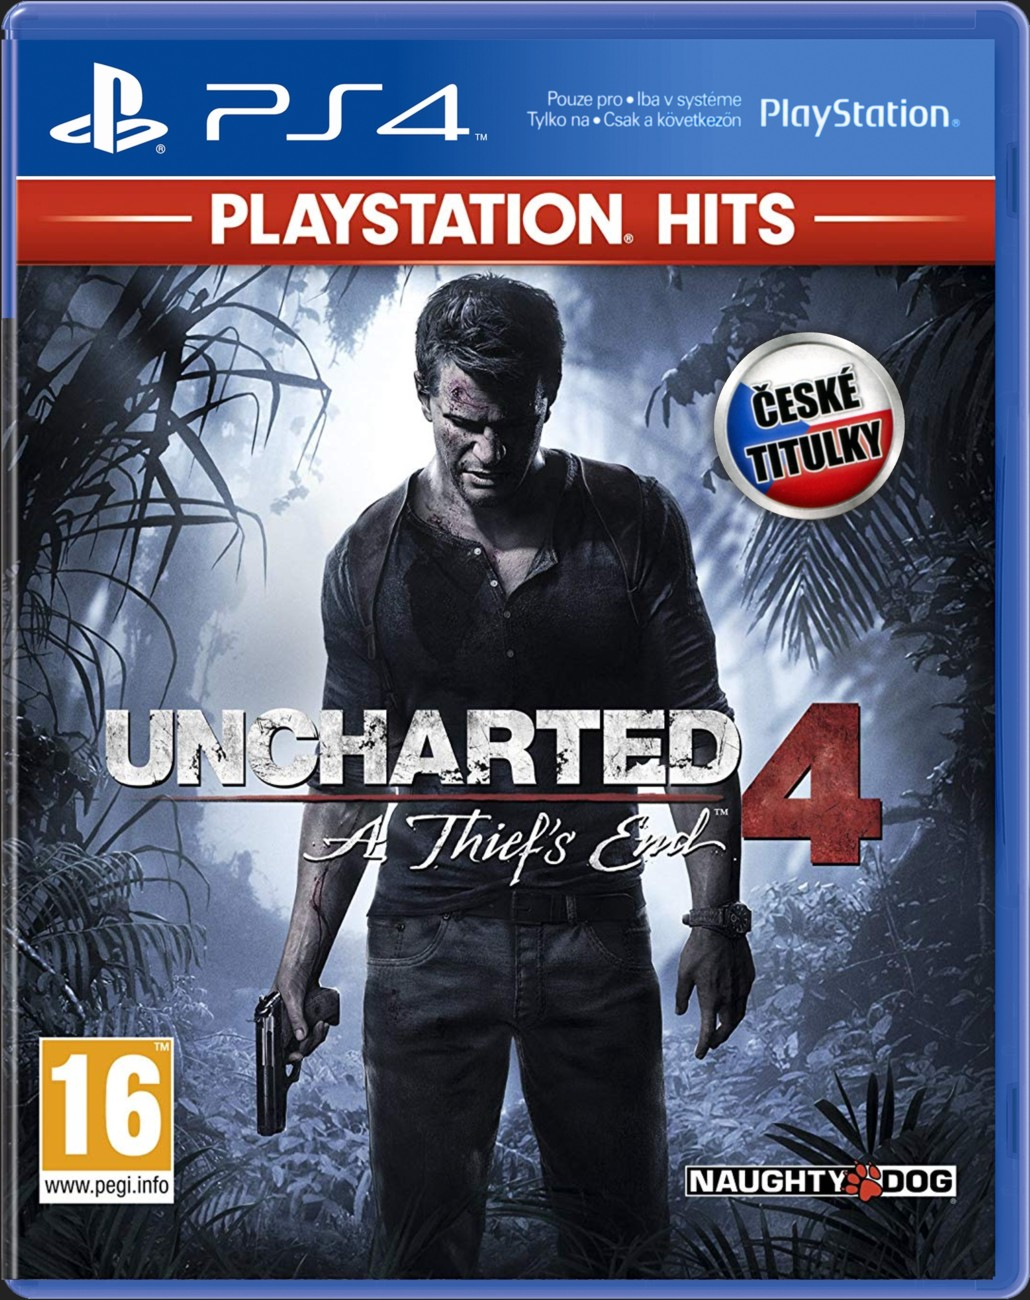 UNCHARTED 4: A THIEF'S END CZ - PS4